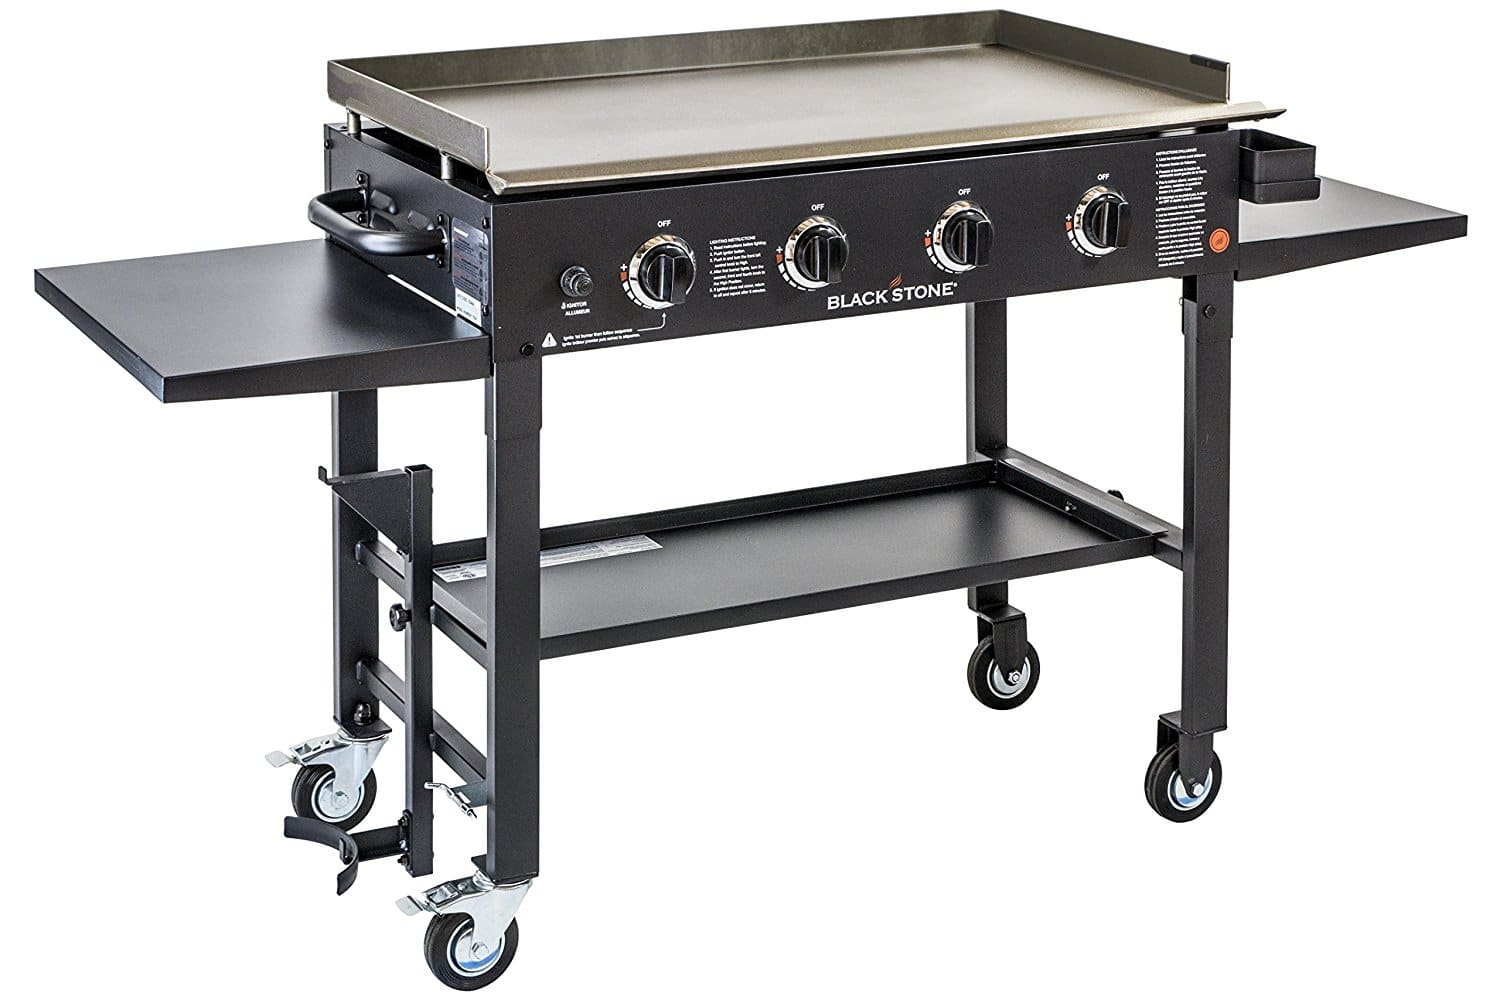 2018 Best Flat Top Outdoor Grills Reviews